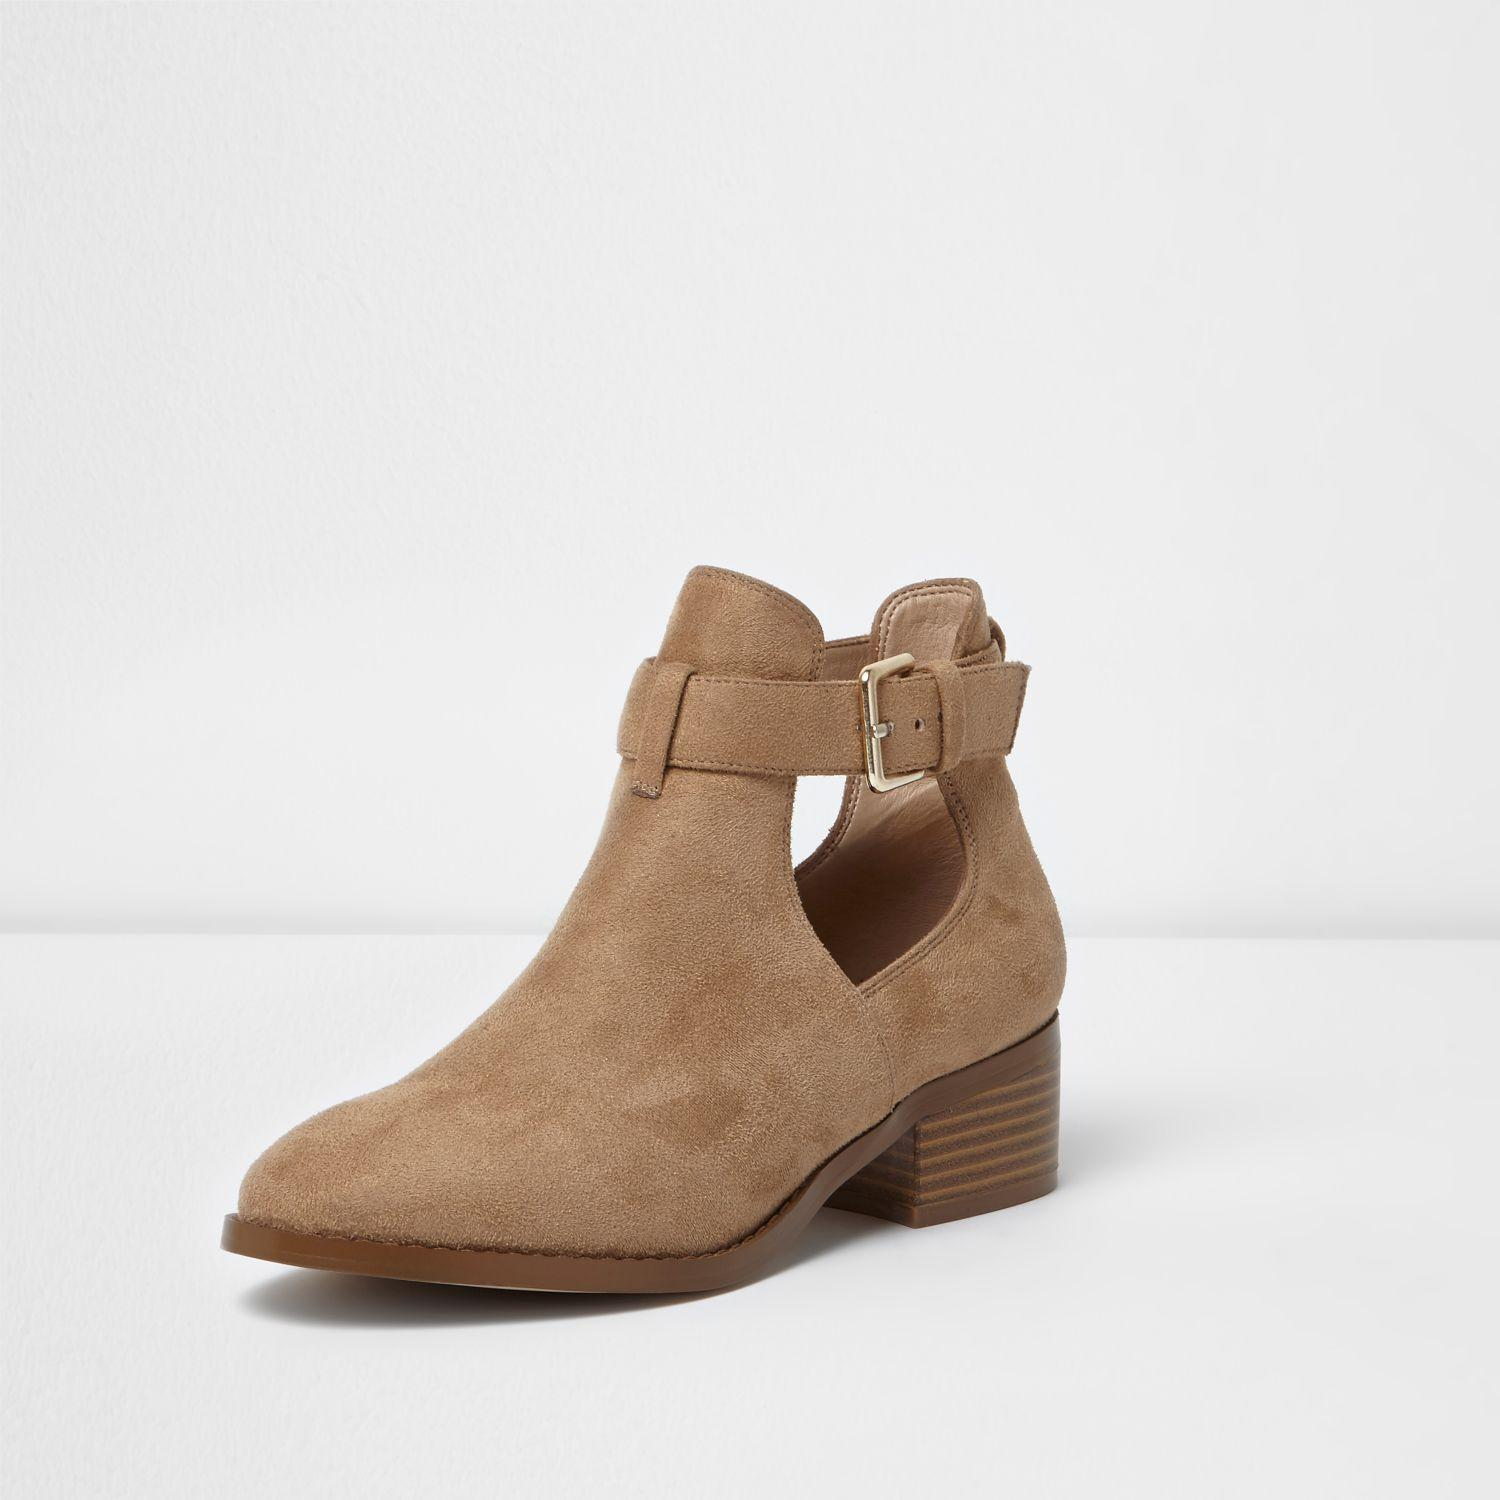 fadbcf36fc7 Women's Natural Beige Cut Out Ankle Boots